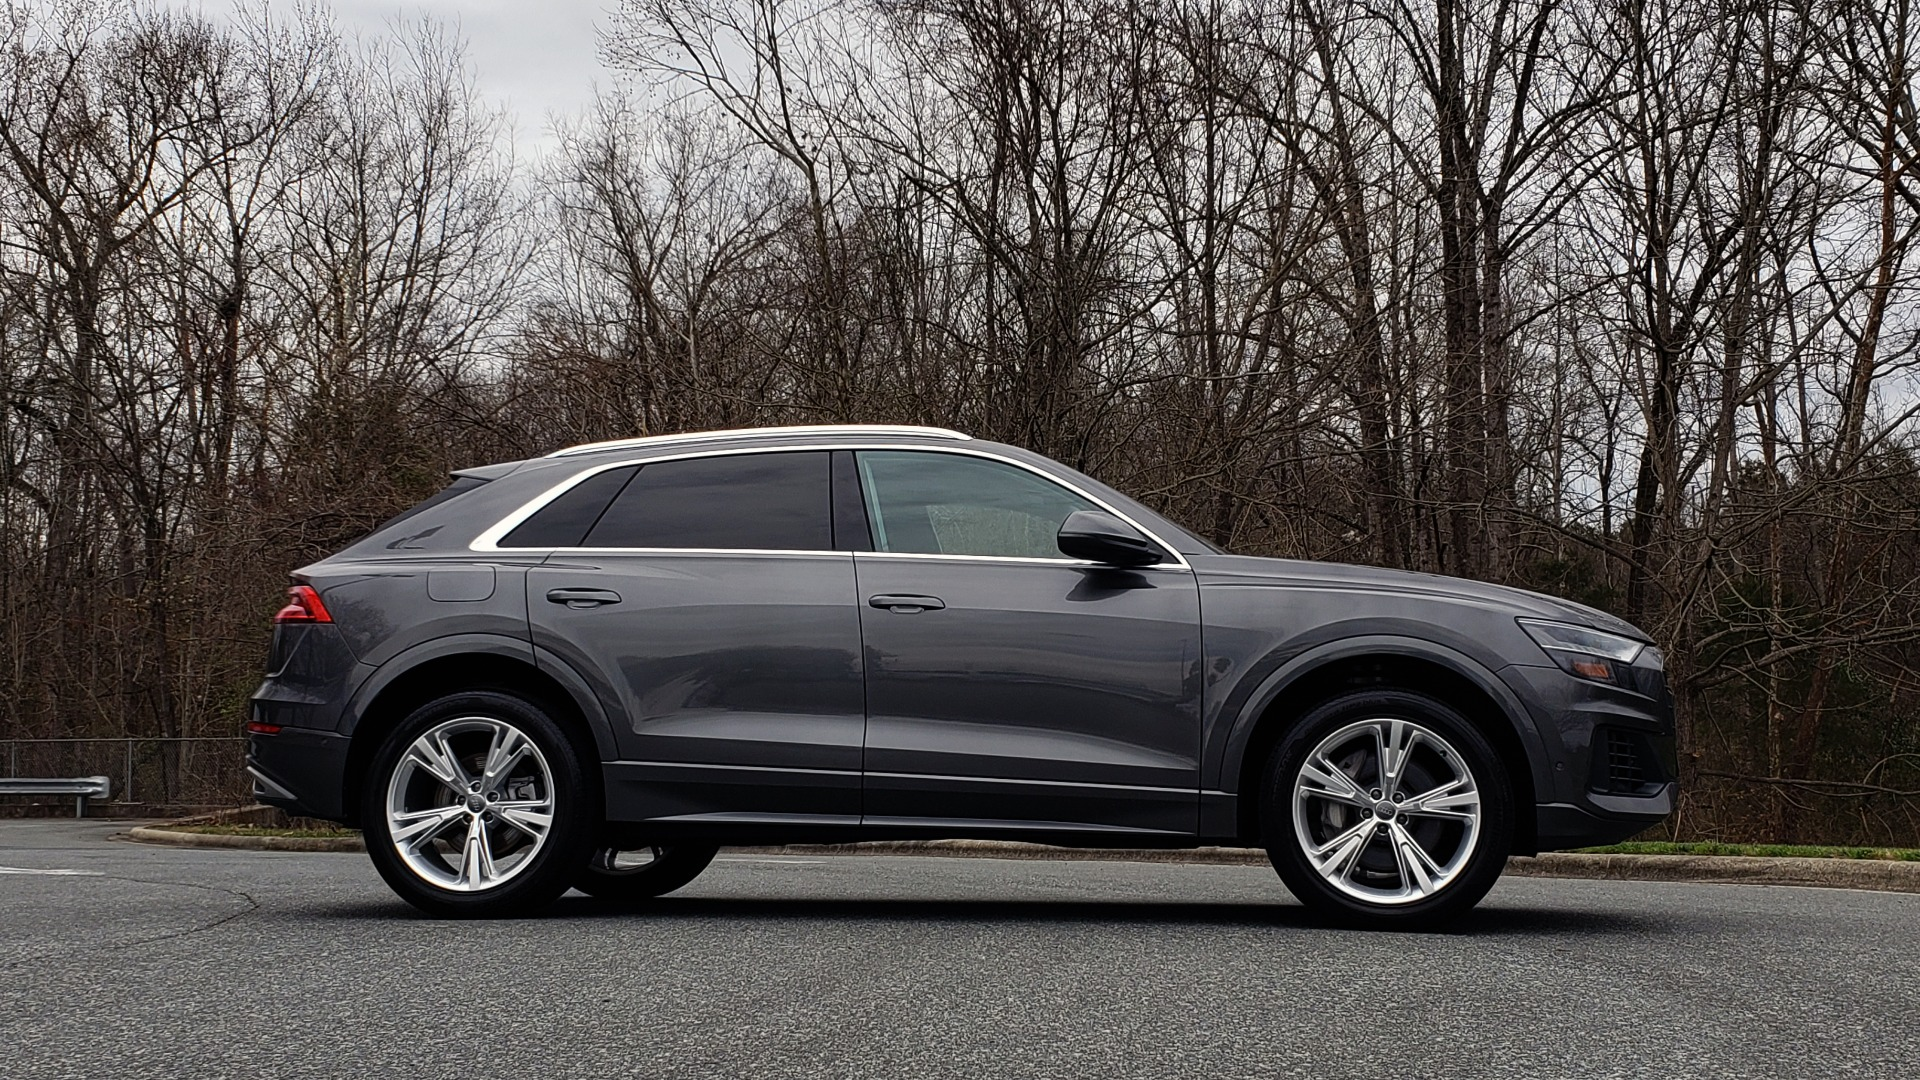 Used 2019 Audi Q8 PRESTIGE 3.0 / NAV / SUNROOF / BO SND / COLD WTHR / REARVIEW for sale Sold at Formula Imports in Charlotte NC 28227 5